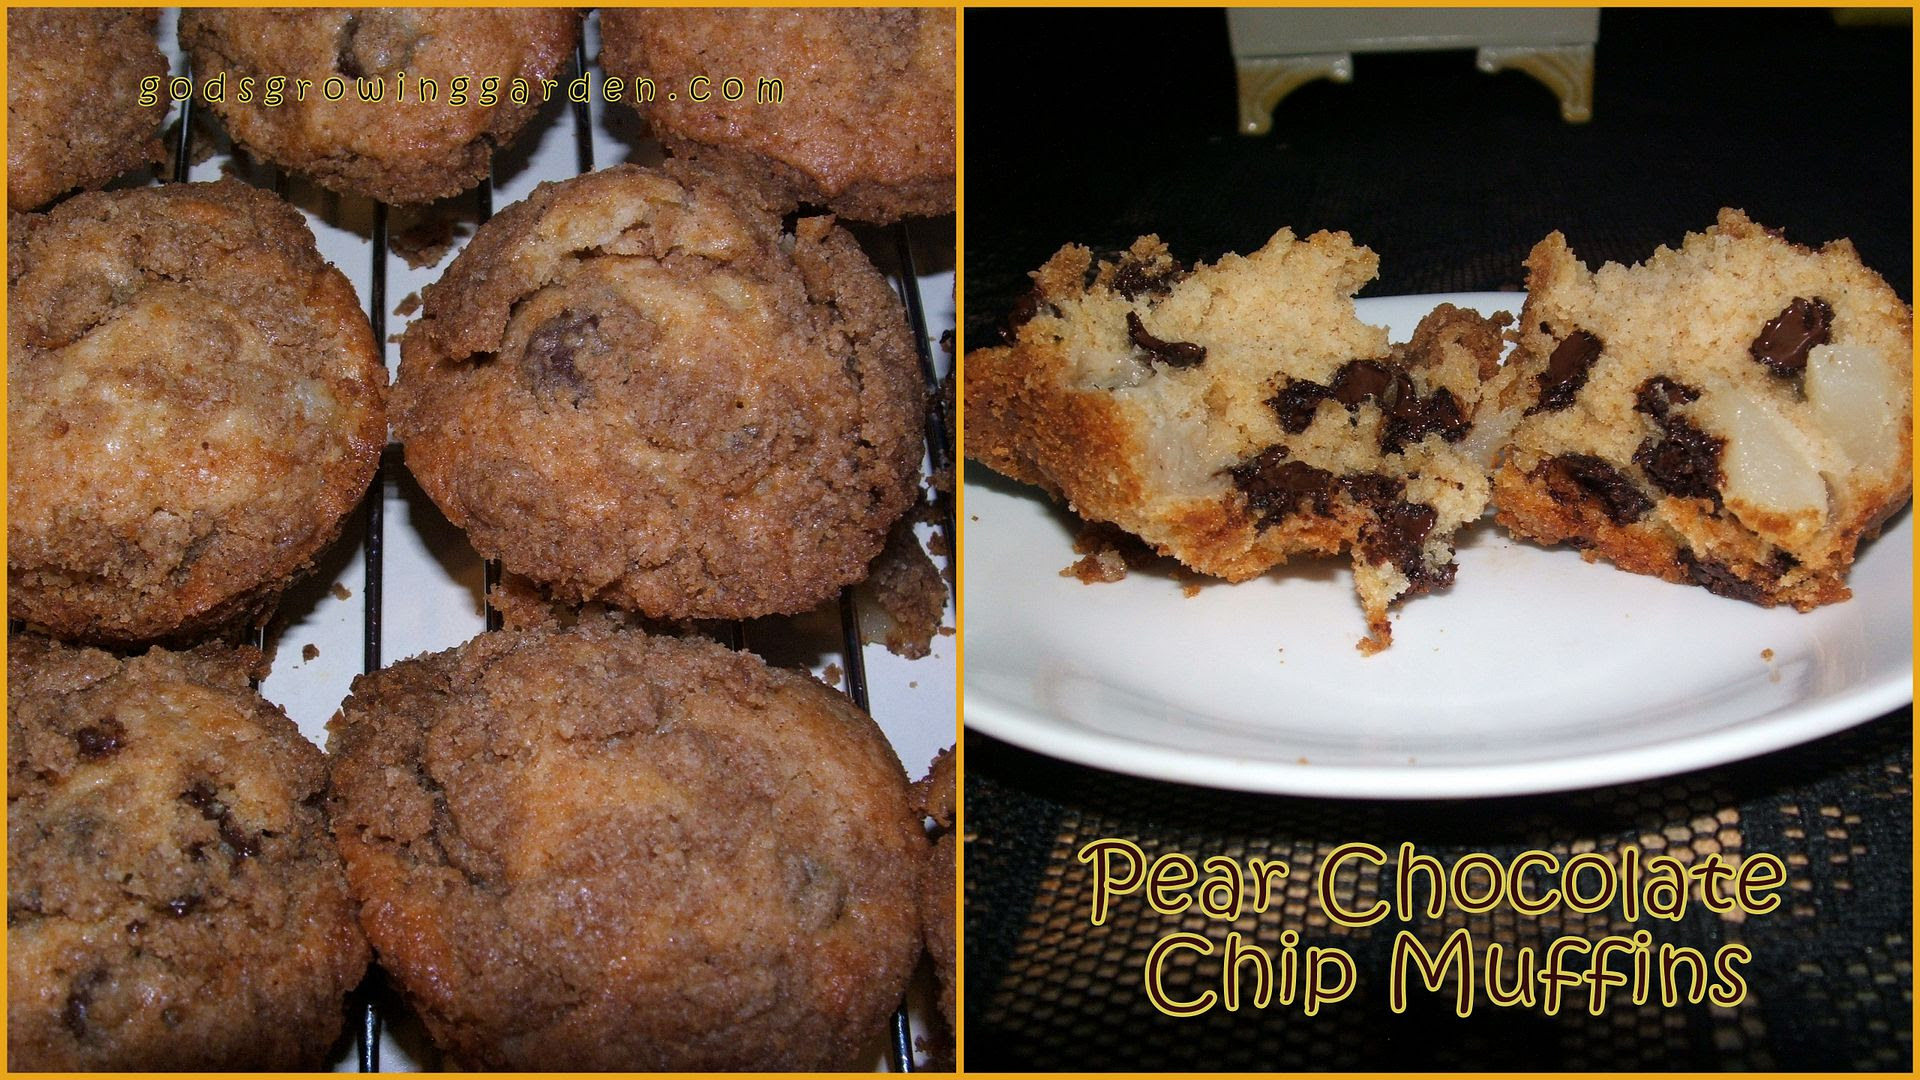 Pear Chocolate Chip Muffins by Angie Ouellette-Tower for godsgrowinggarden.com photo 2013-10-16_zps3b88bb22.jpg